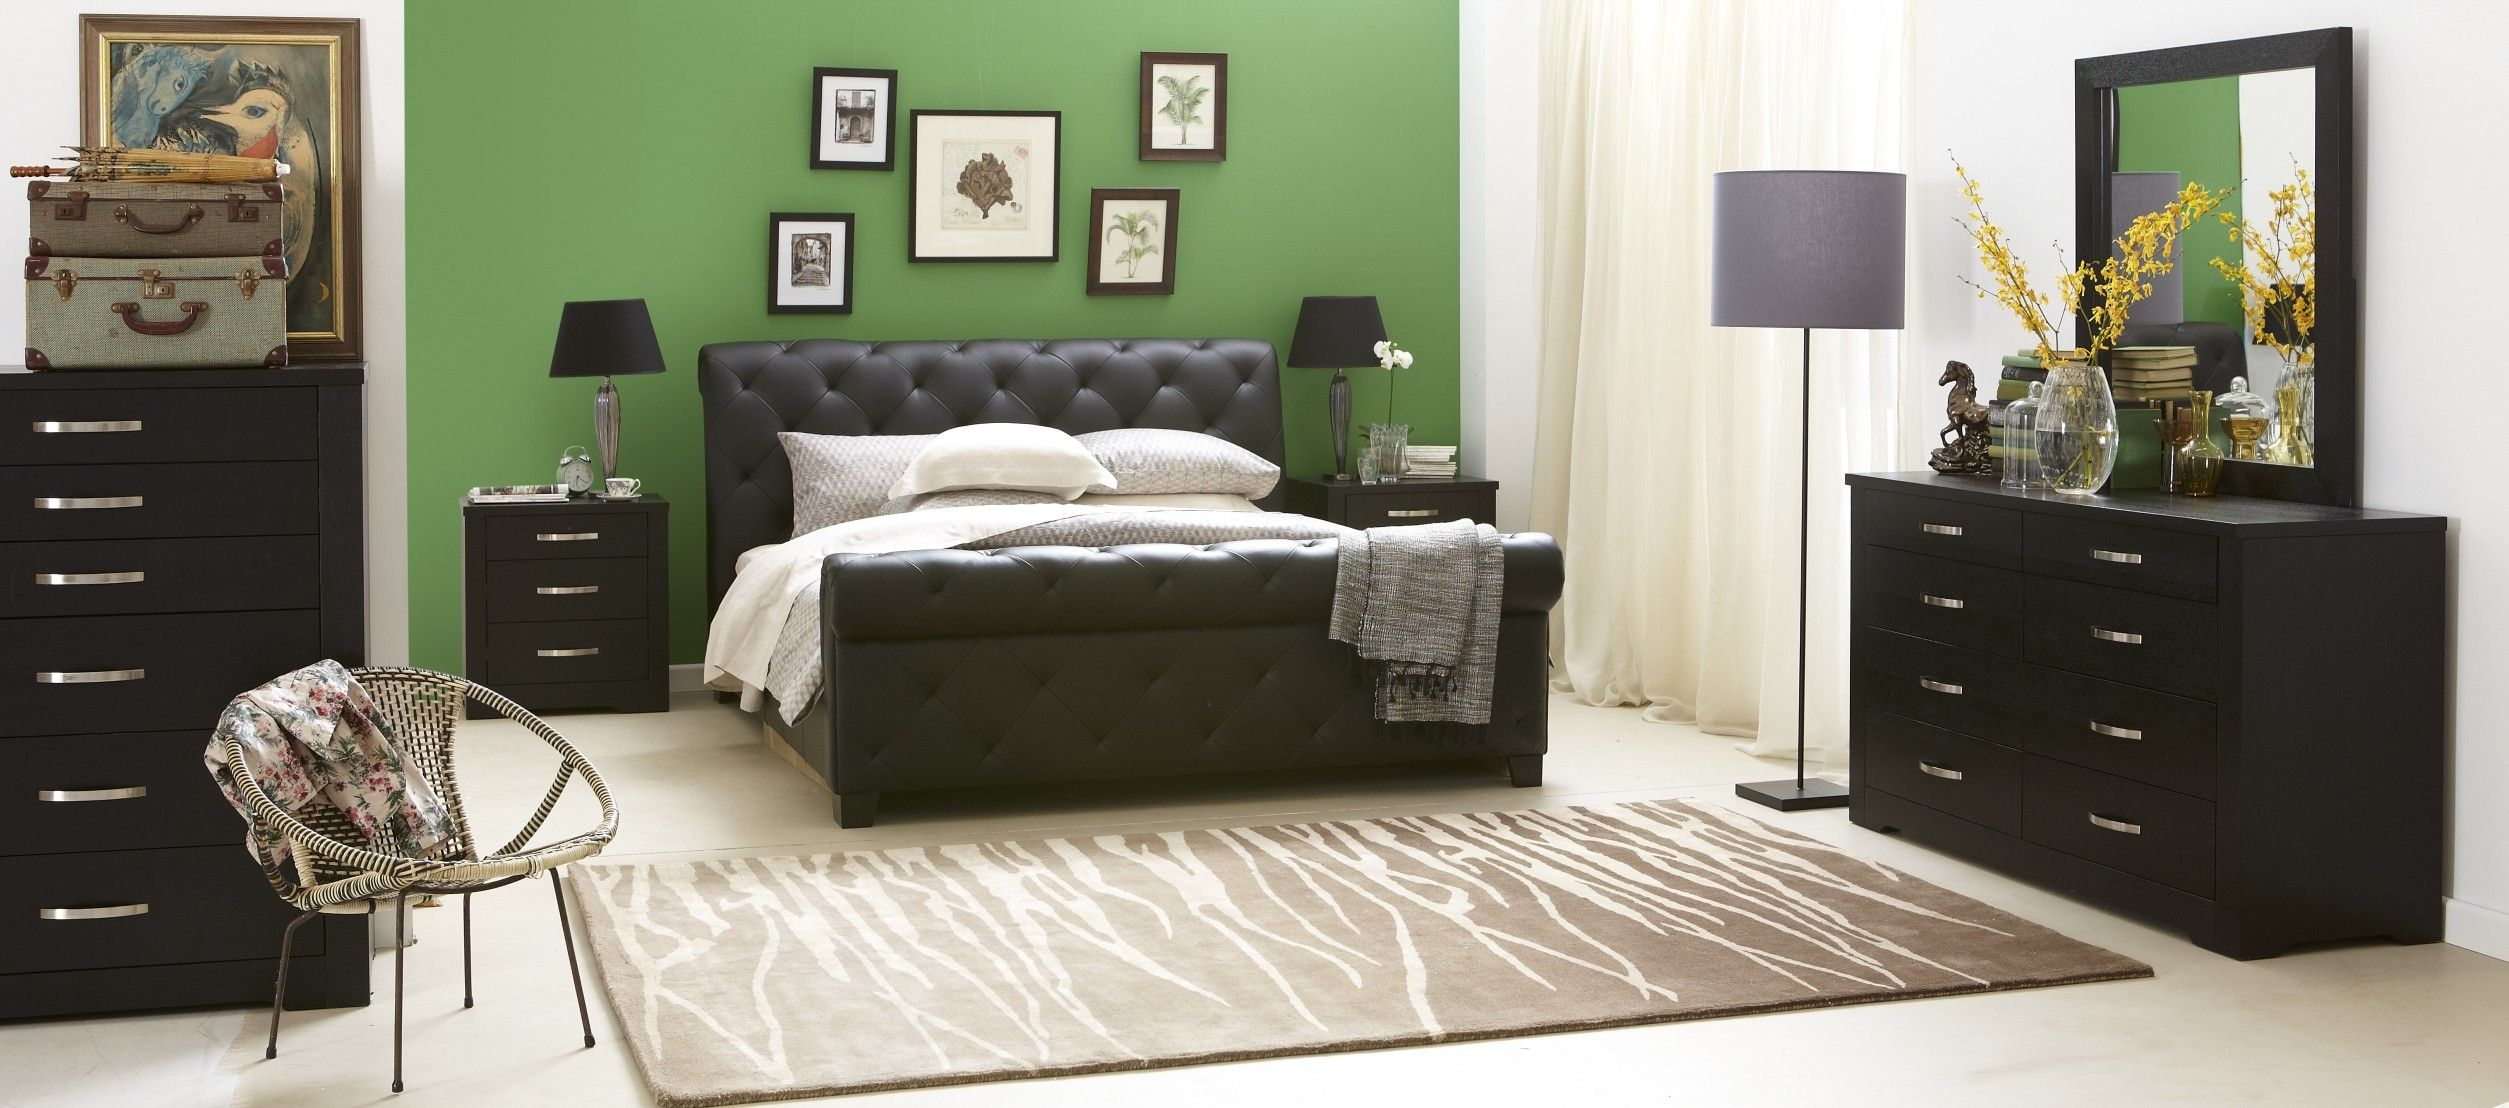 Forty Winks Century luxurious modern studded leather bed and black ...